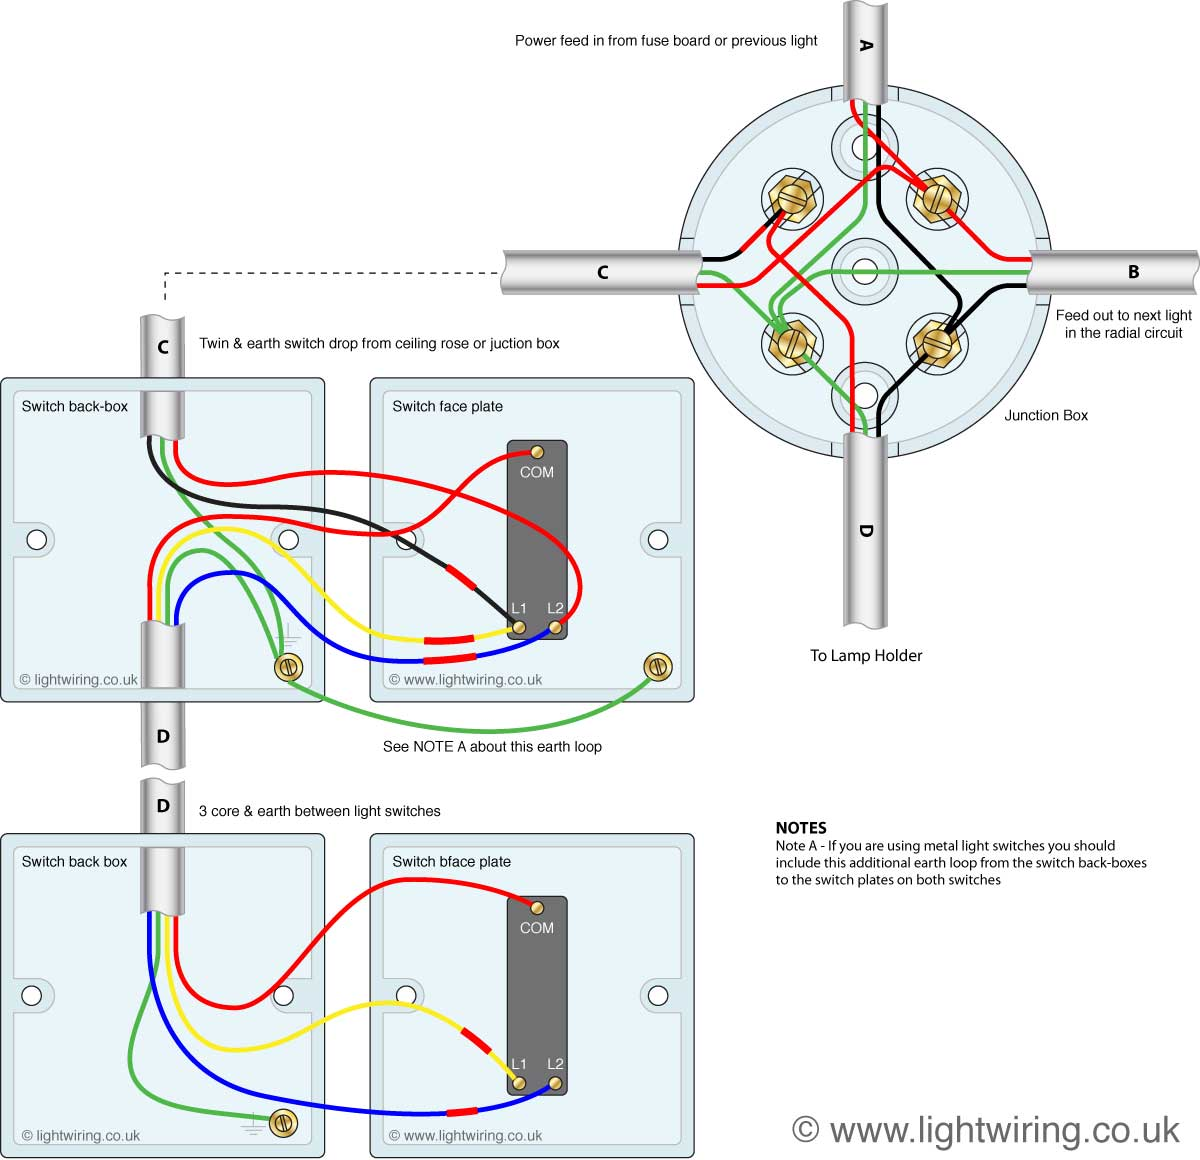 3 way switching from junction box 2 way switch (3 wire system, old cable colours) light wiring 3 core and earth wiring diagram at virtualis.co